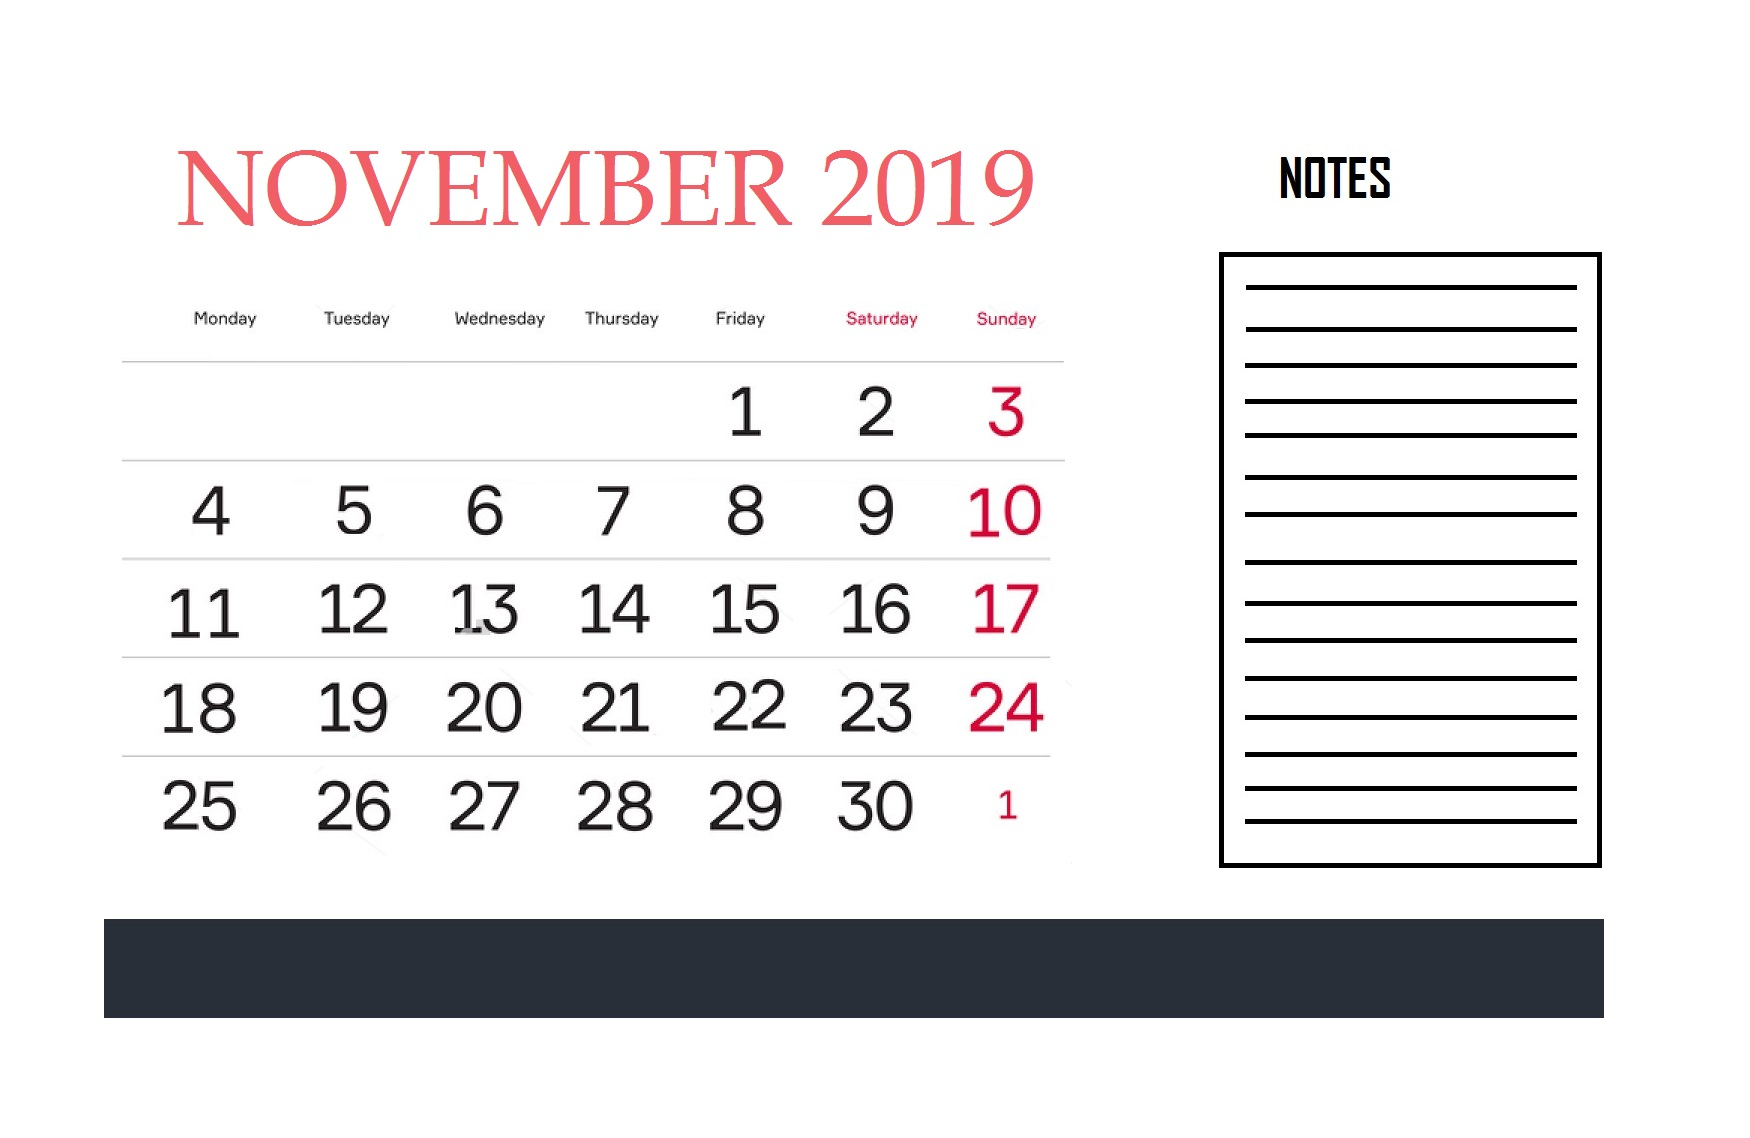 November 2019 Calendar For Office Wall